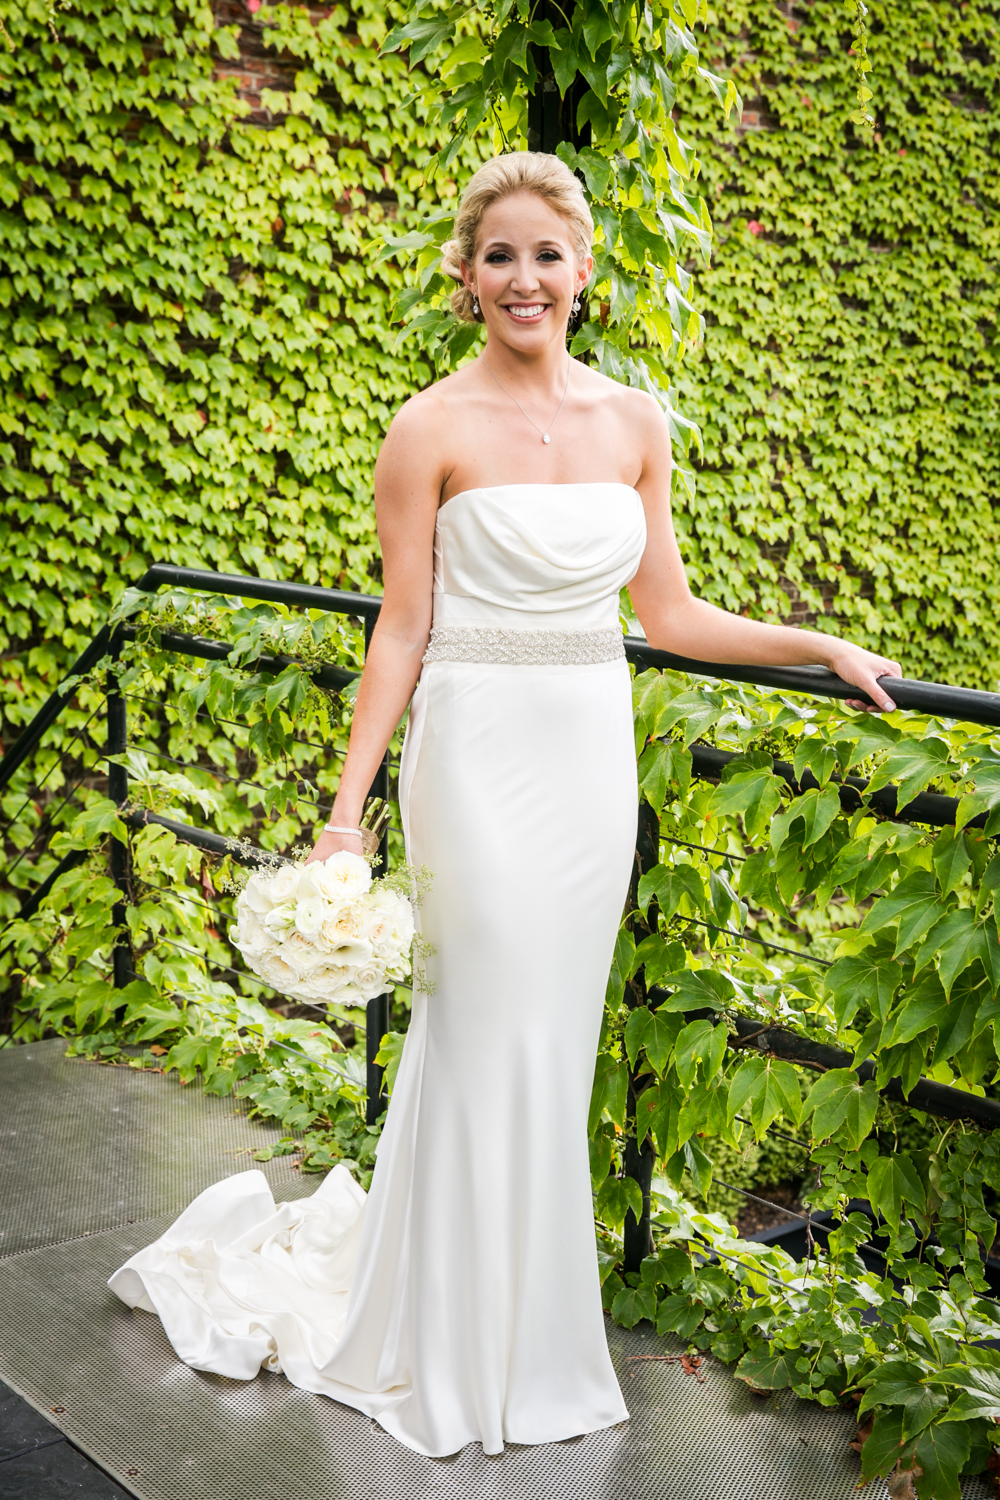 Portrait of bride wearing strapless gown and holding bouquet